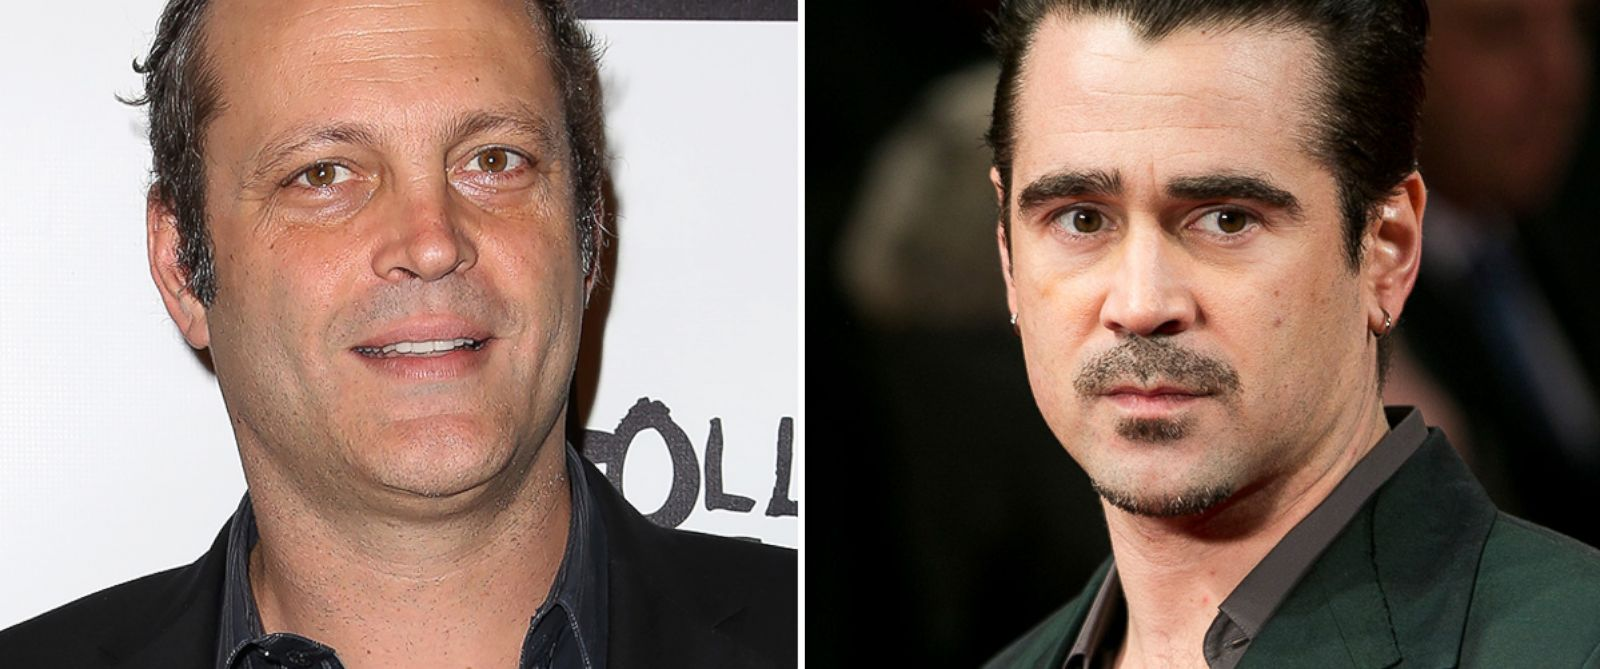 Colin Farrell And Vince Vaughn To Star In 'True Detective